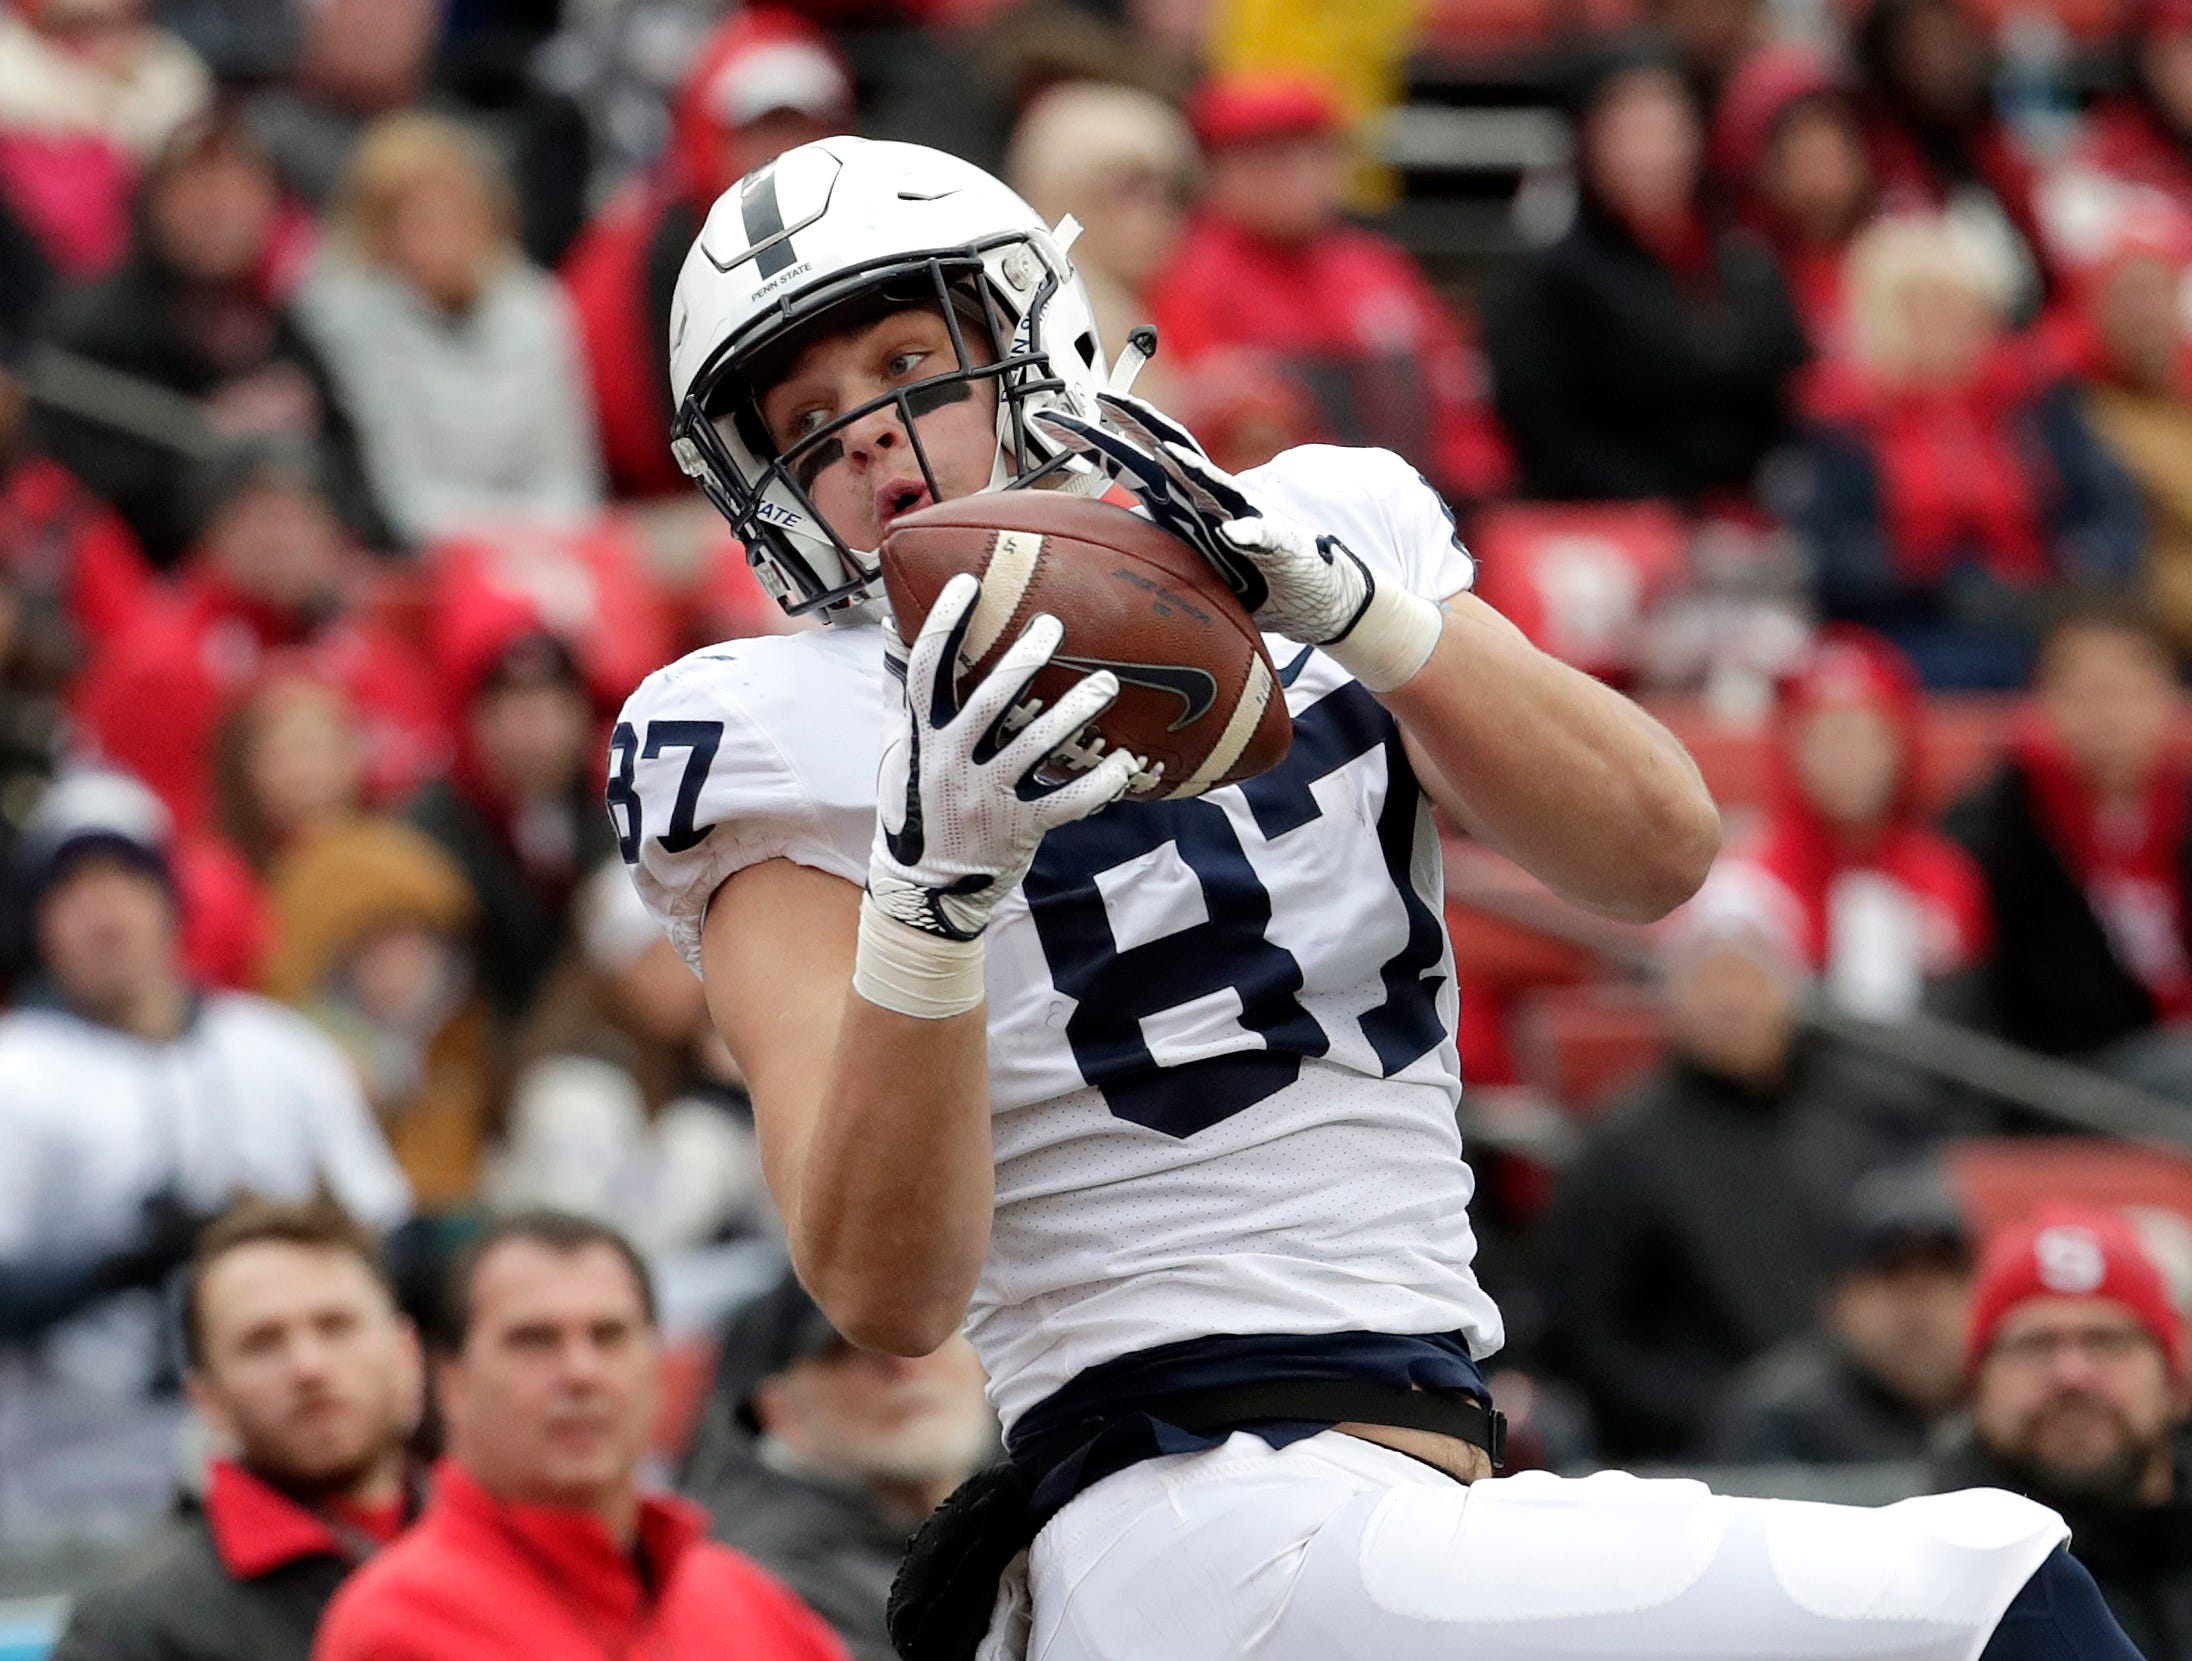 Penn State tight end Pat Freiermuth catches a touchdown pass from quarterback Trace McSorley during the second half of an NCAA college football game against Rutgers, Saturday, Nov. 17, 2018, in Piscataway, N.J. (AP Photo/Julio Cortez)